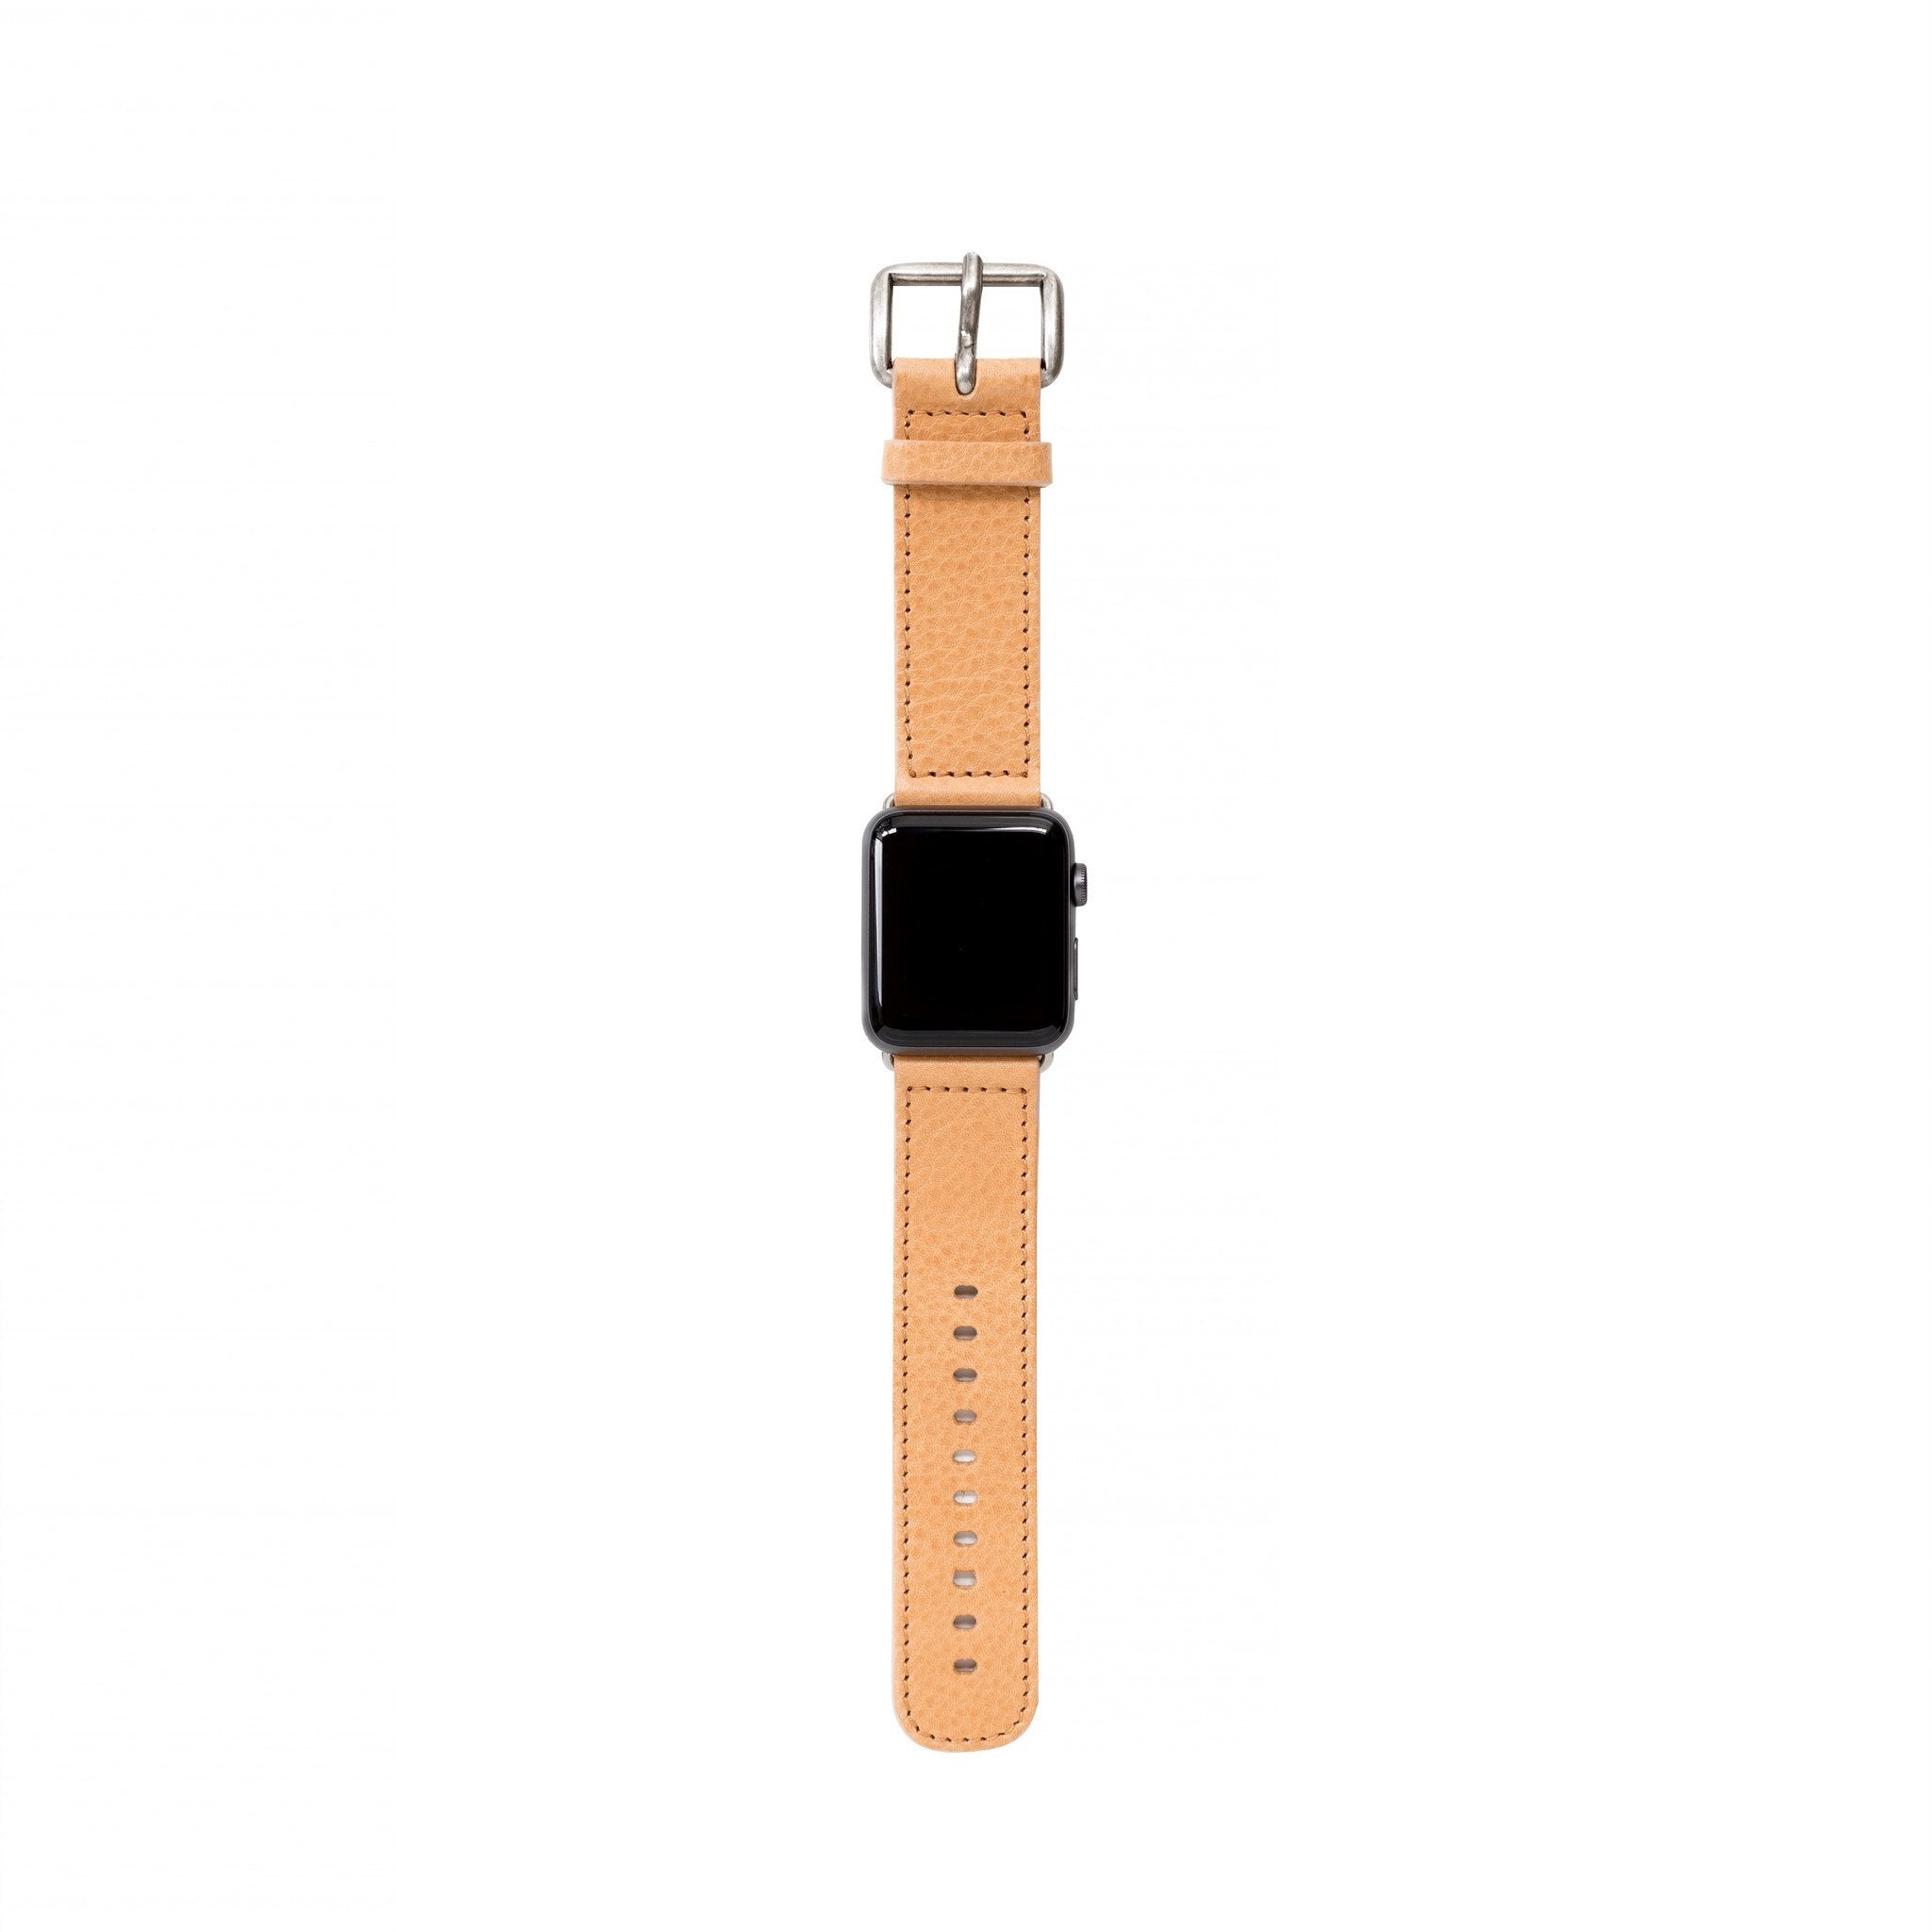 BAND CONNOISSEUR FOR APPLE WATCH